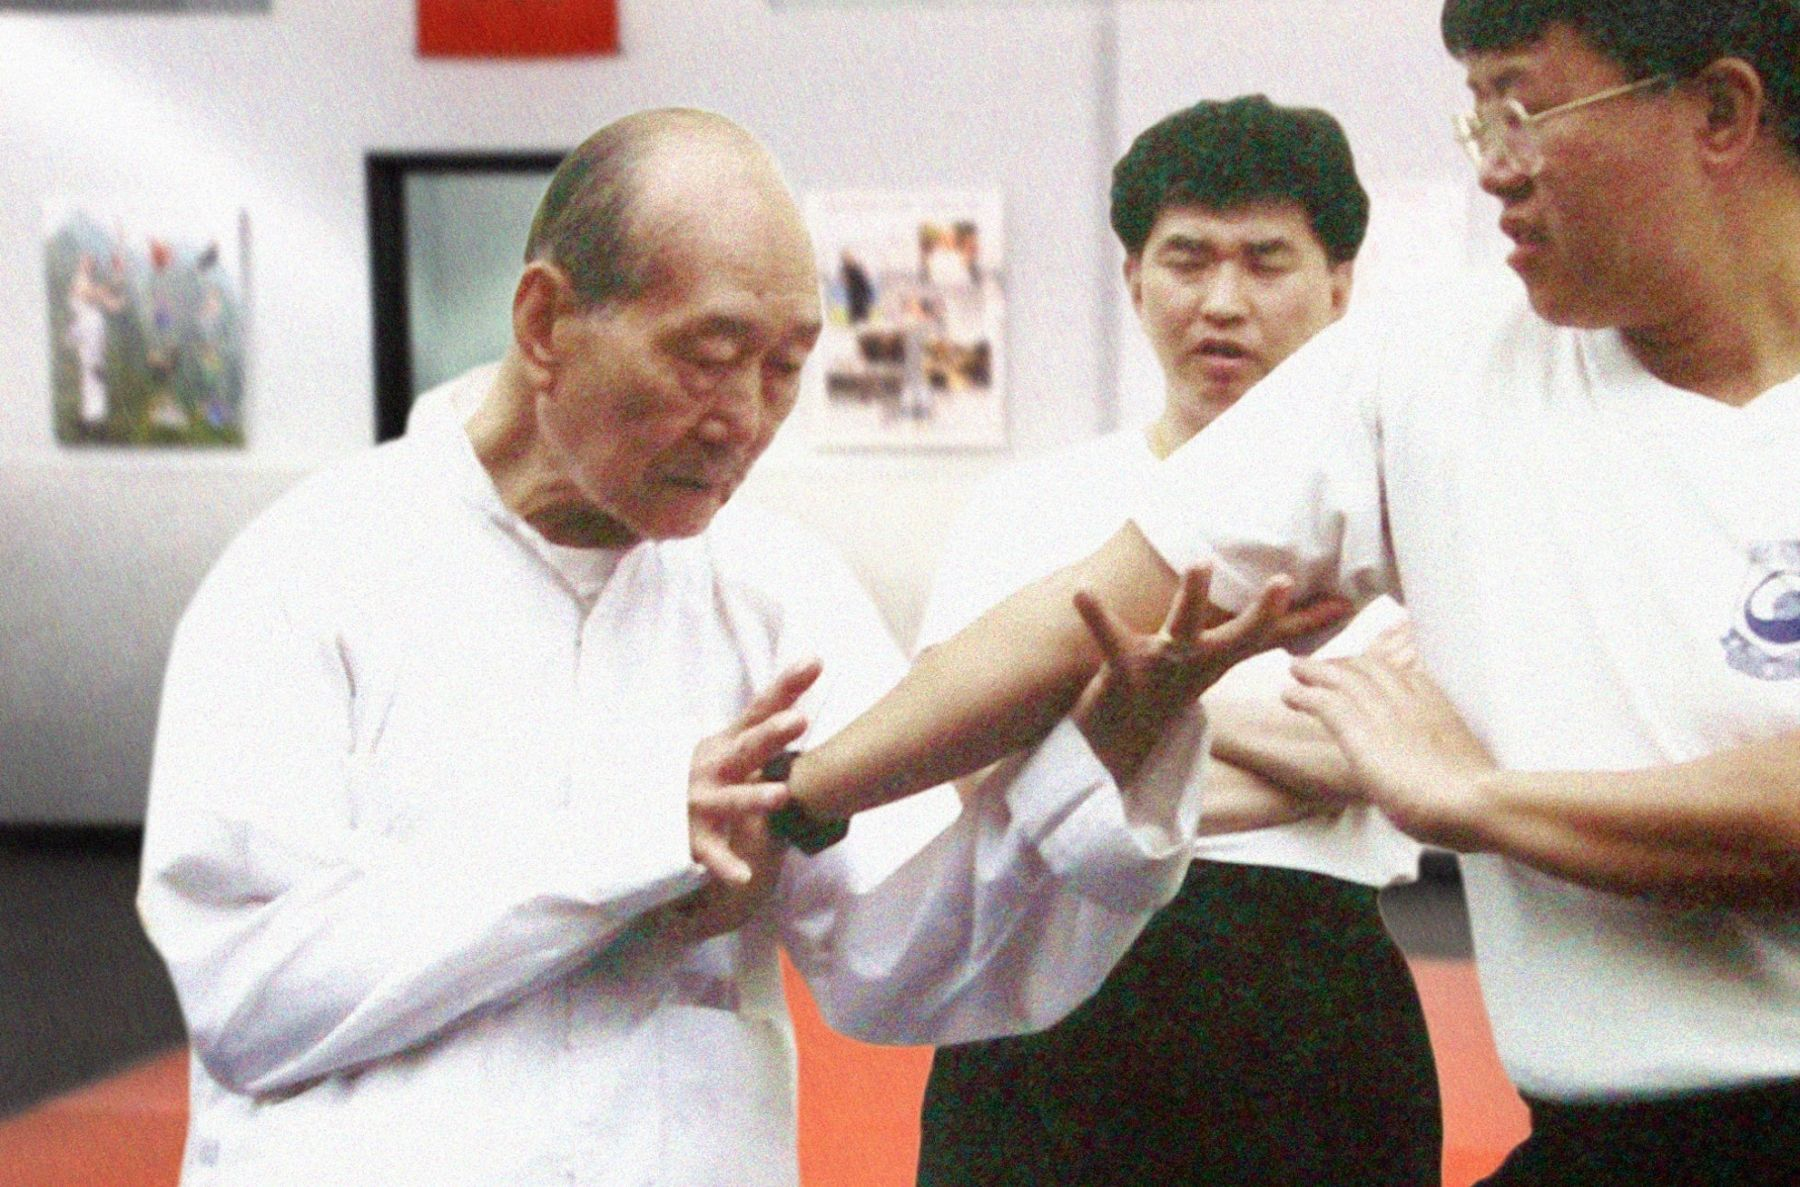 Great Grandmaster Hu Yuen Chou, a third generation Choy Li Fut Grandmaster, shows a joint locking technique